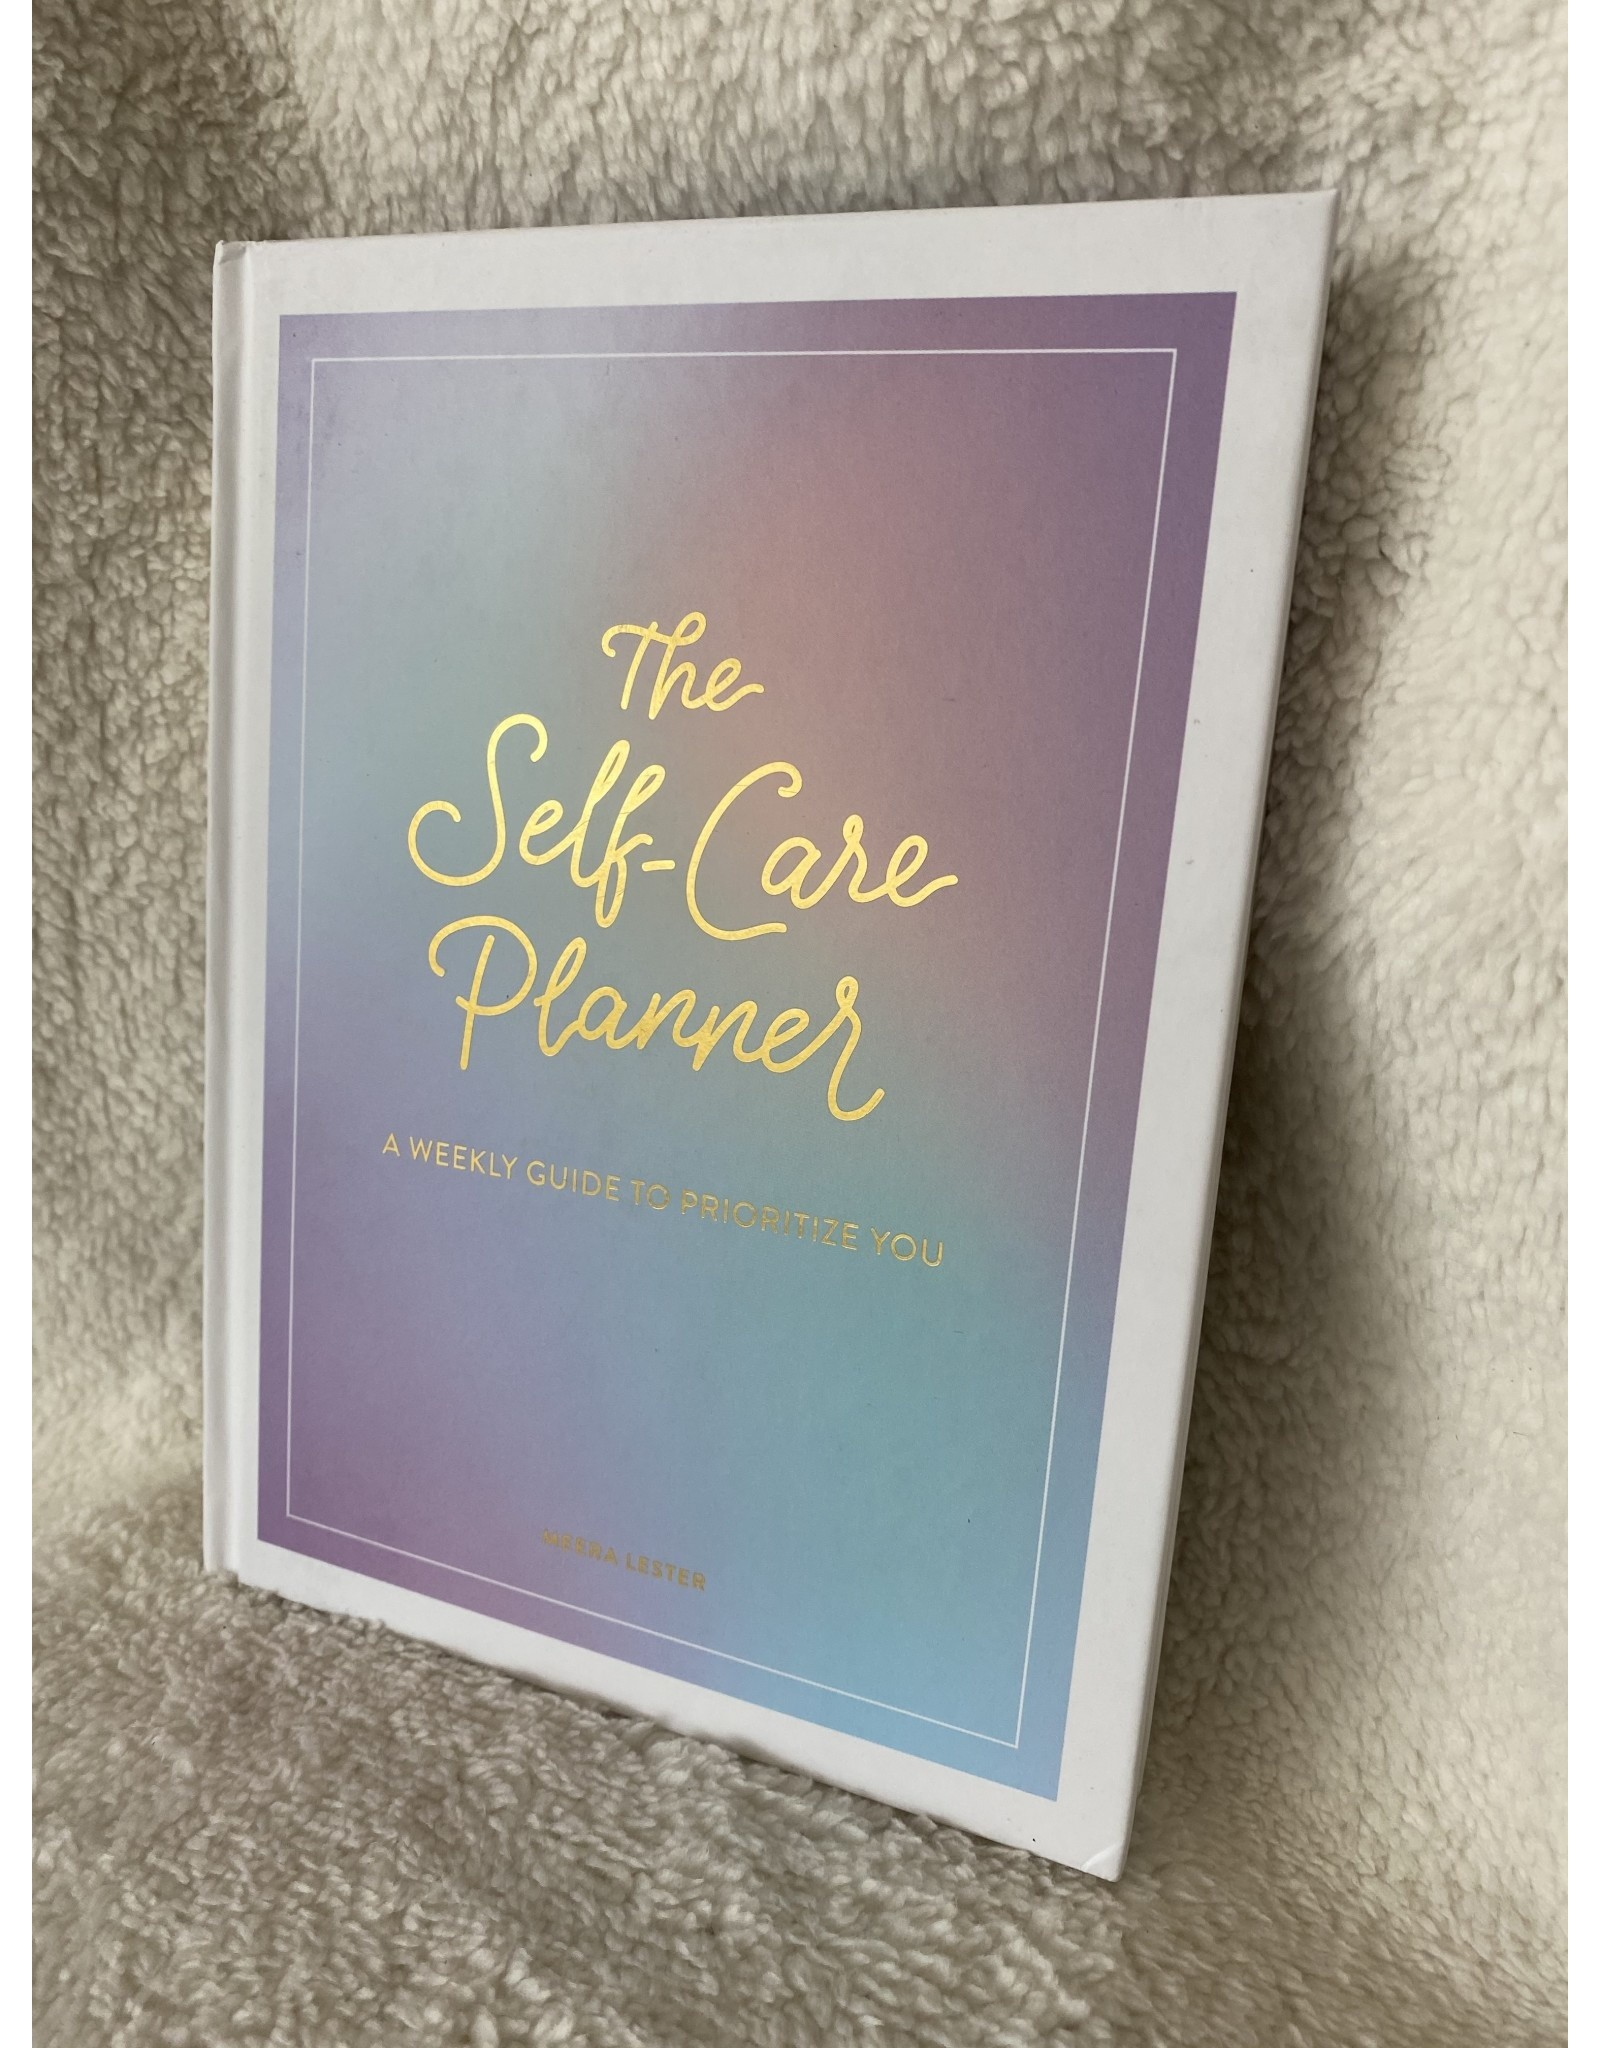 The Self-Care Planner